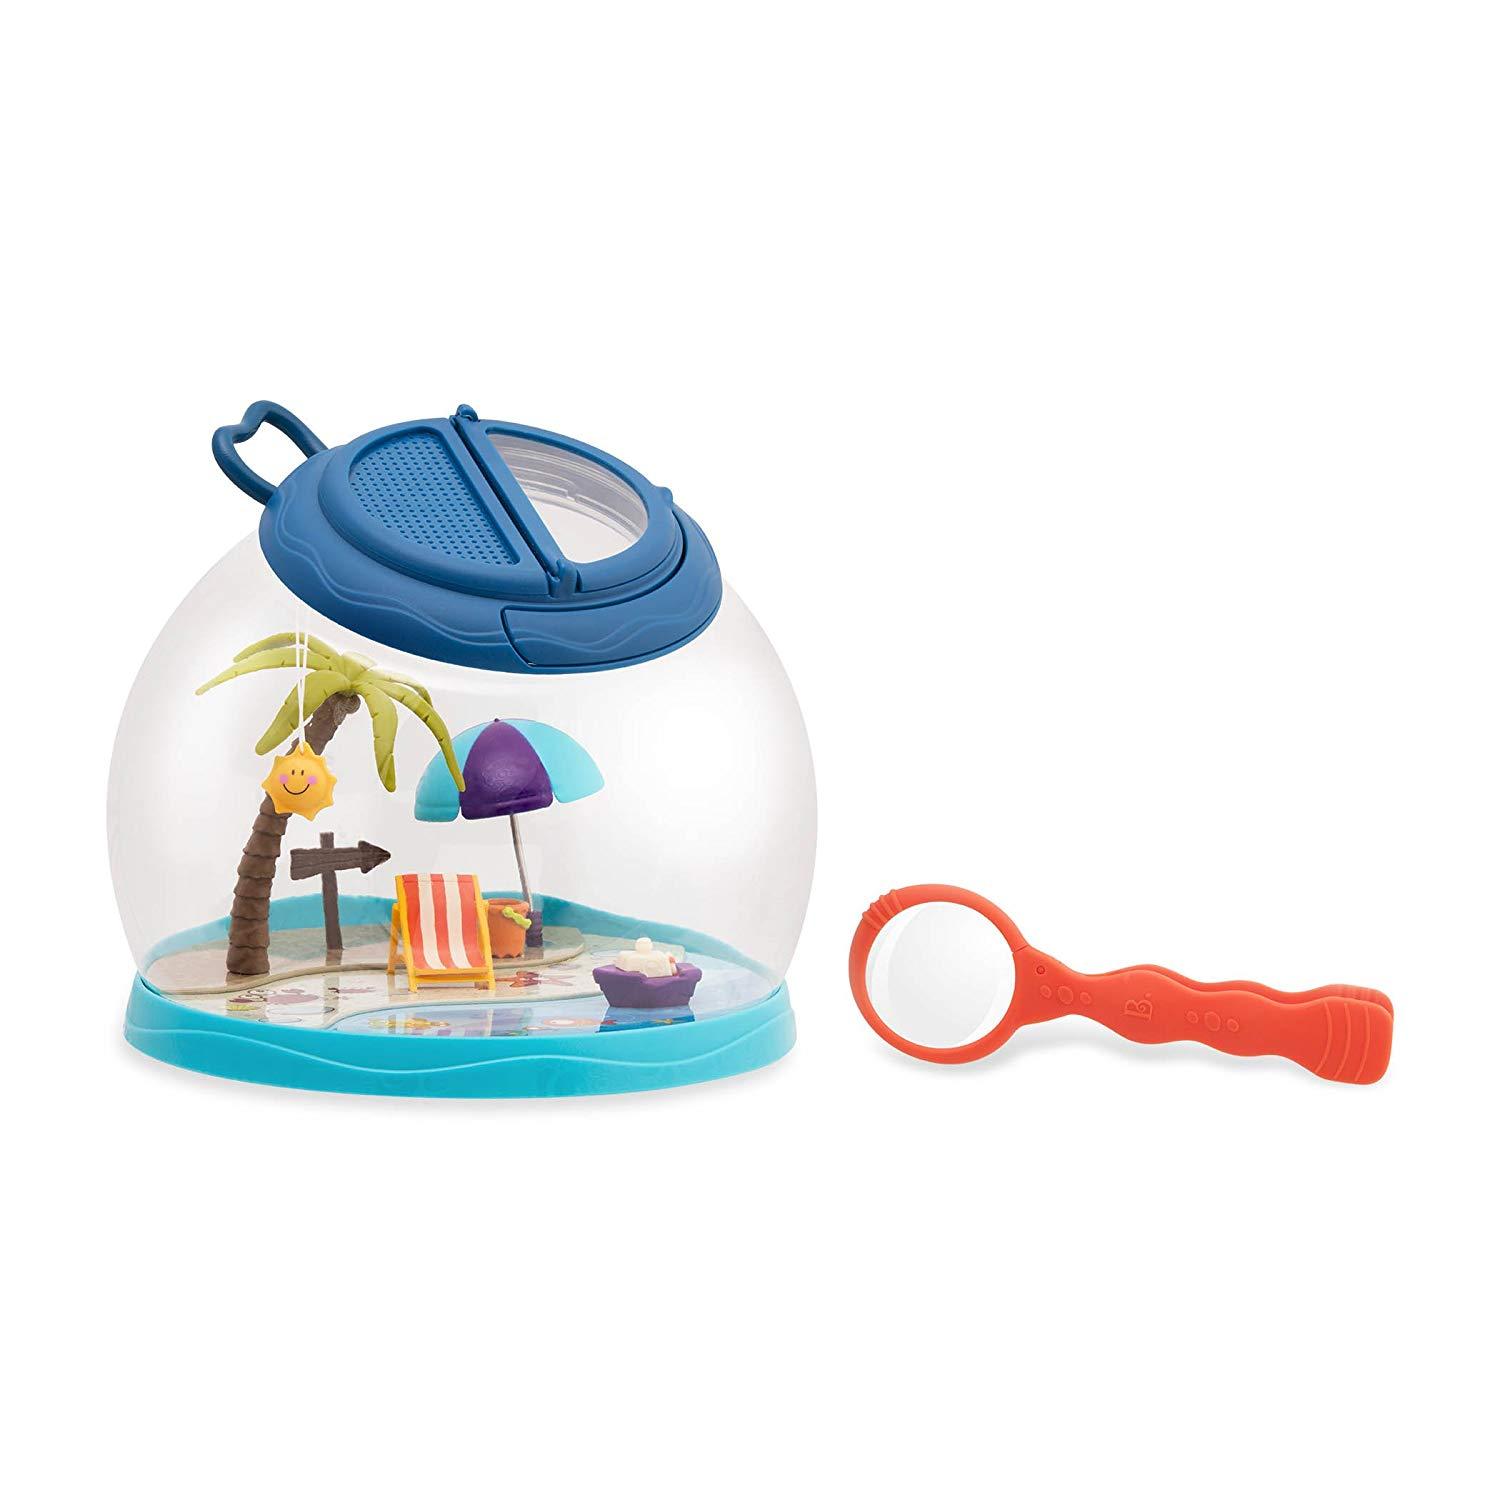 B toys by Battat – Tiki Retreat Bug Catcher Kit – 1 Bug Cage with Tweezers and Magnifying Glass – Bug toys for kids 4+